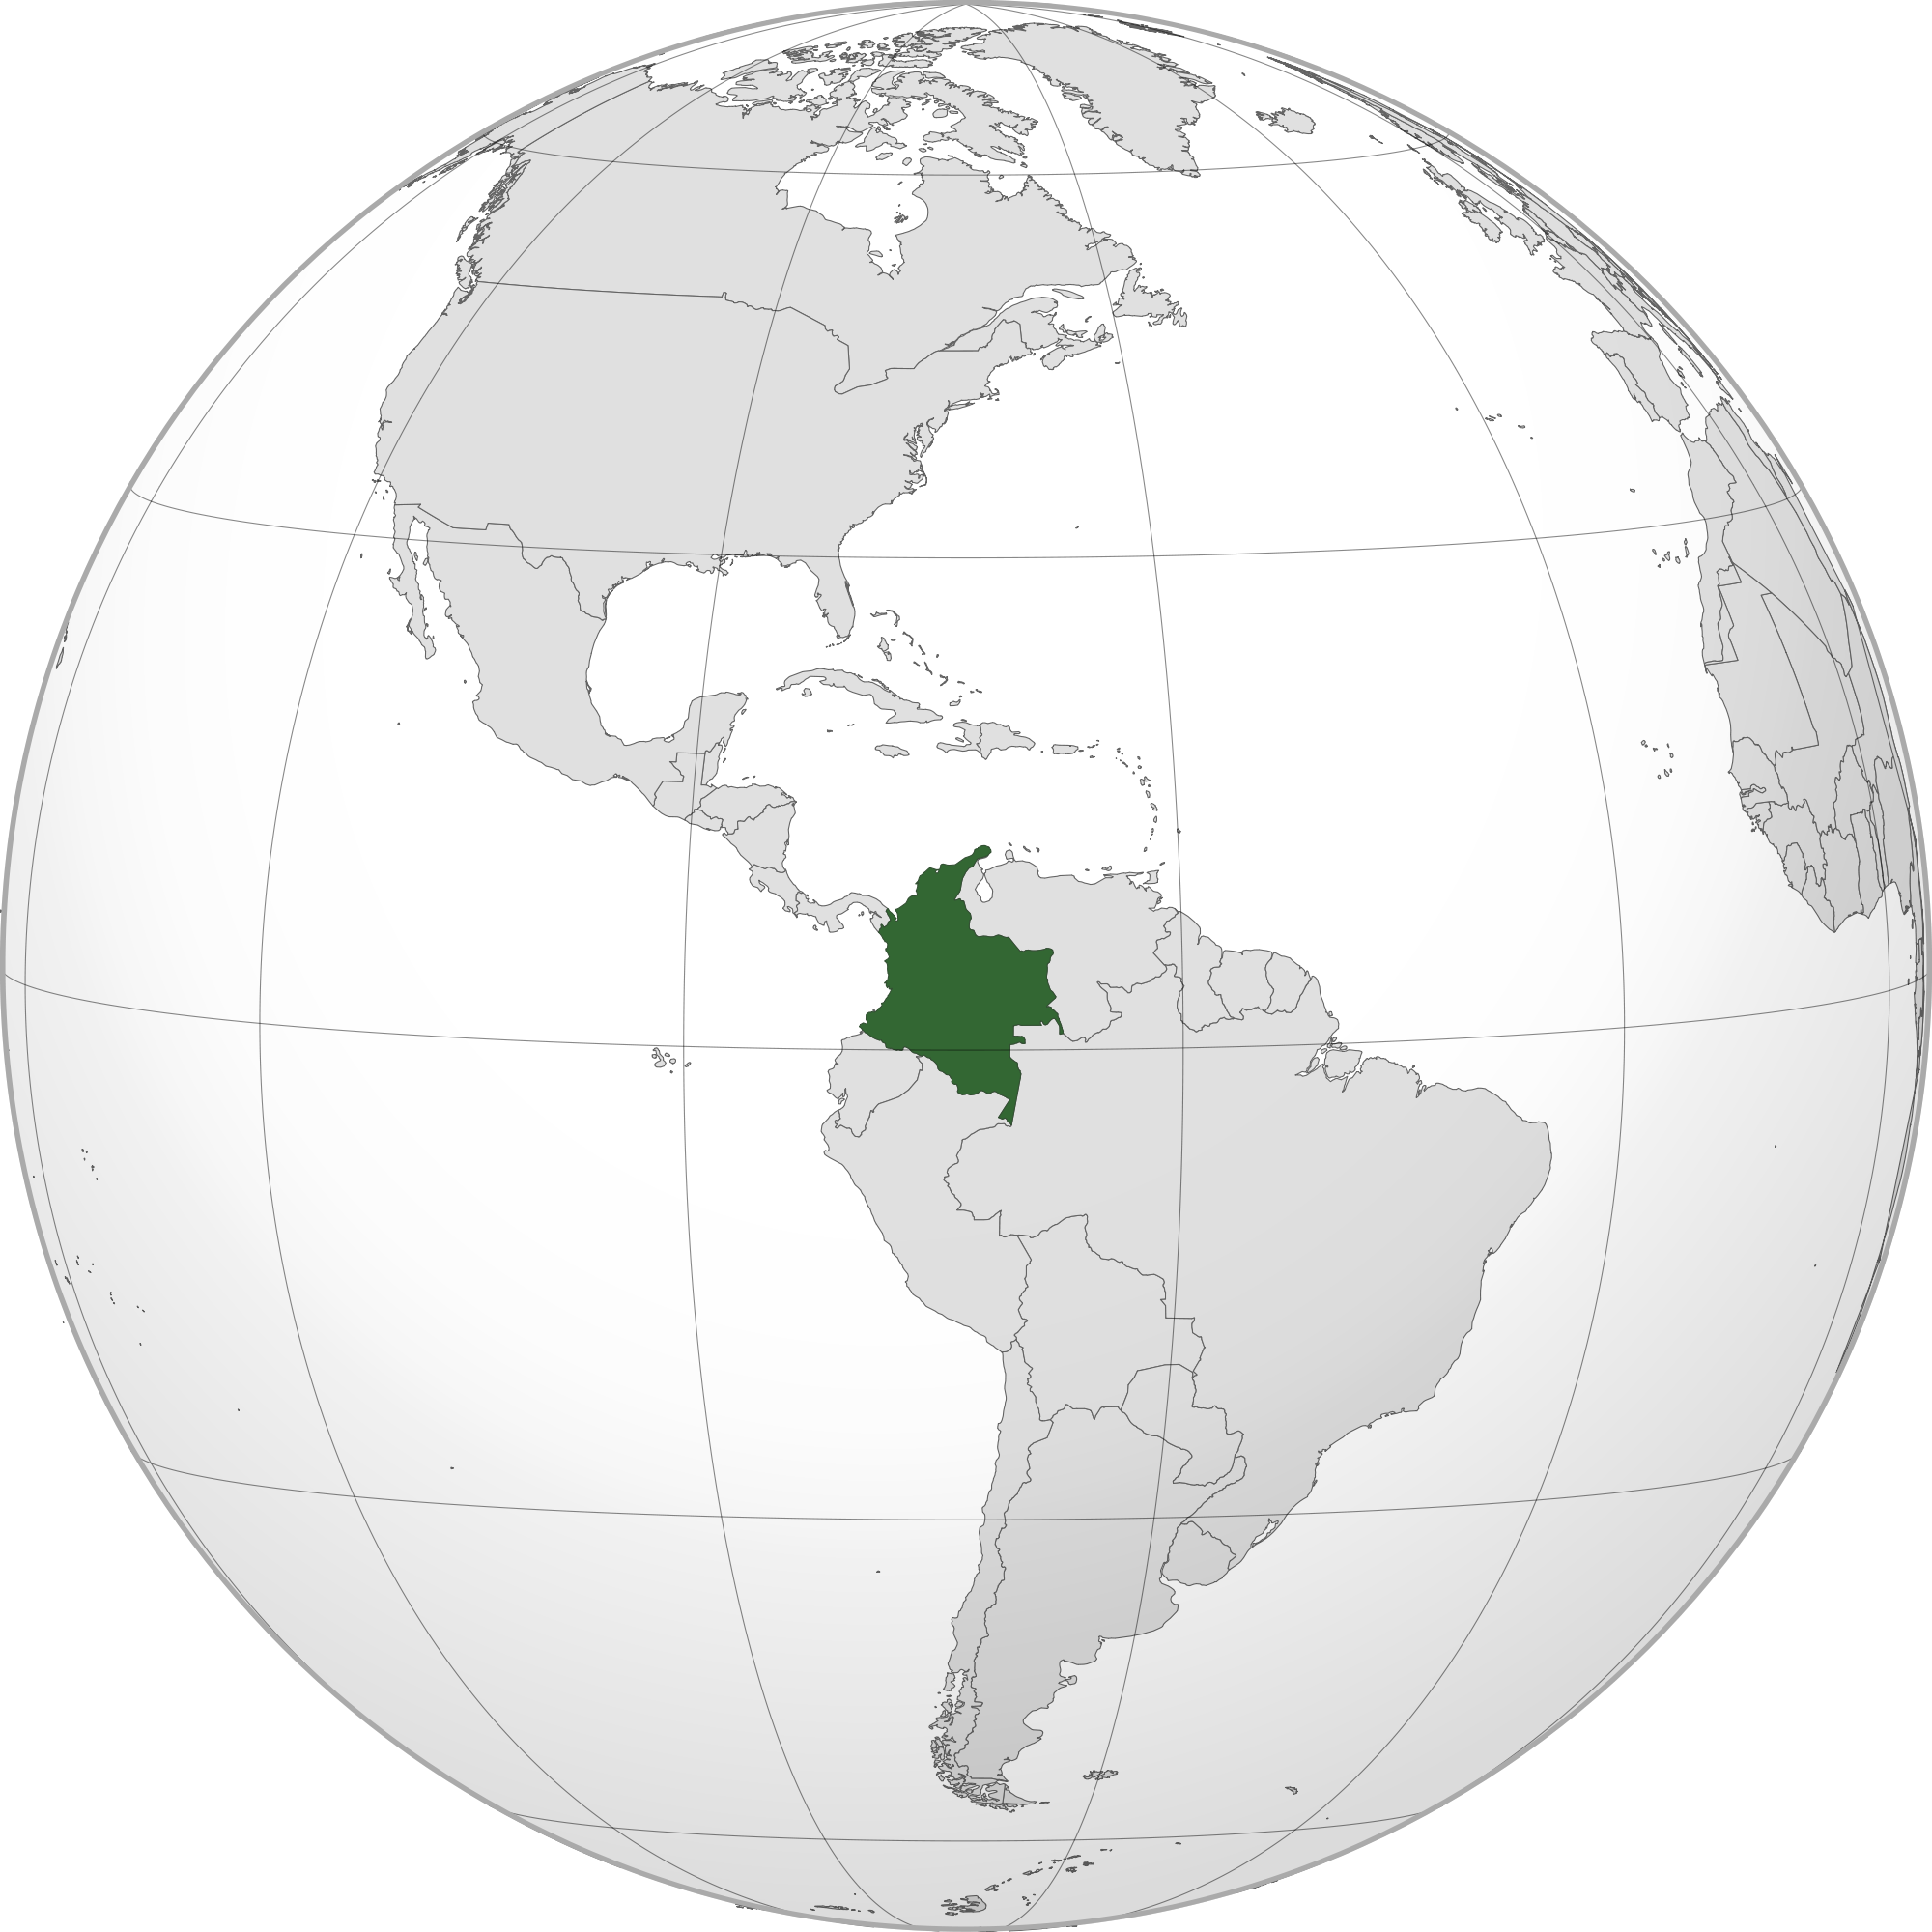 Location of the colombia in the World Map